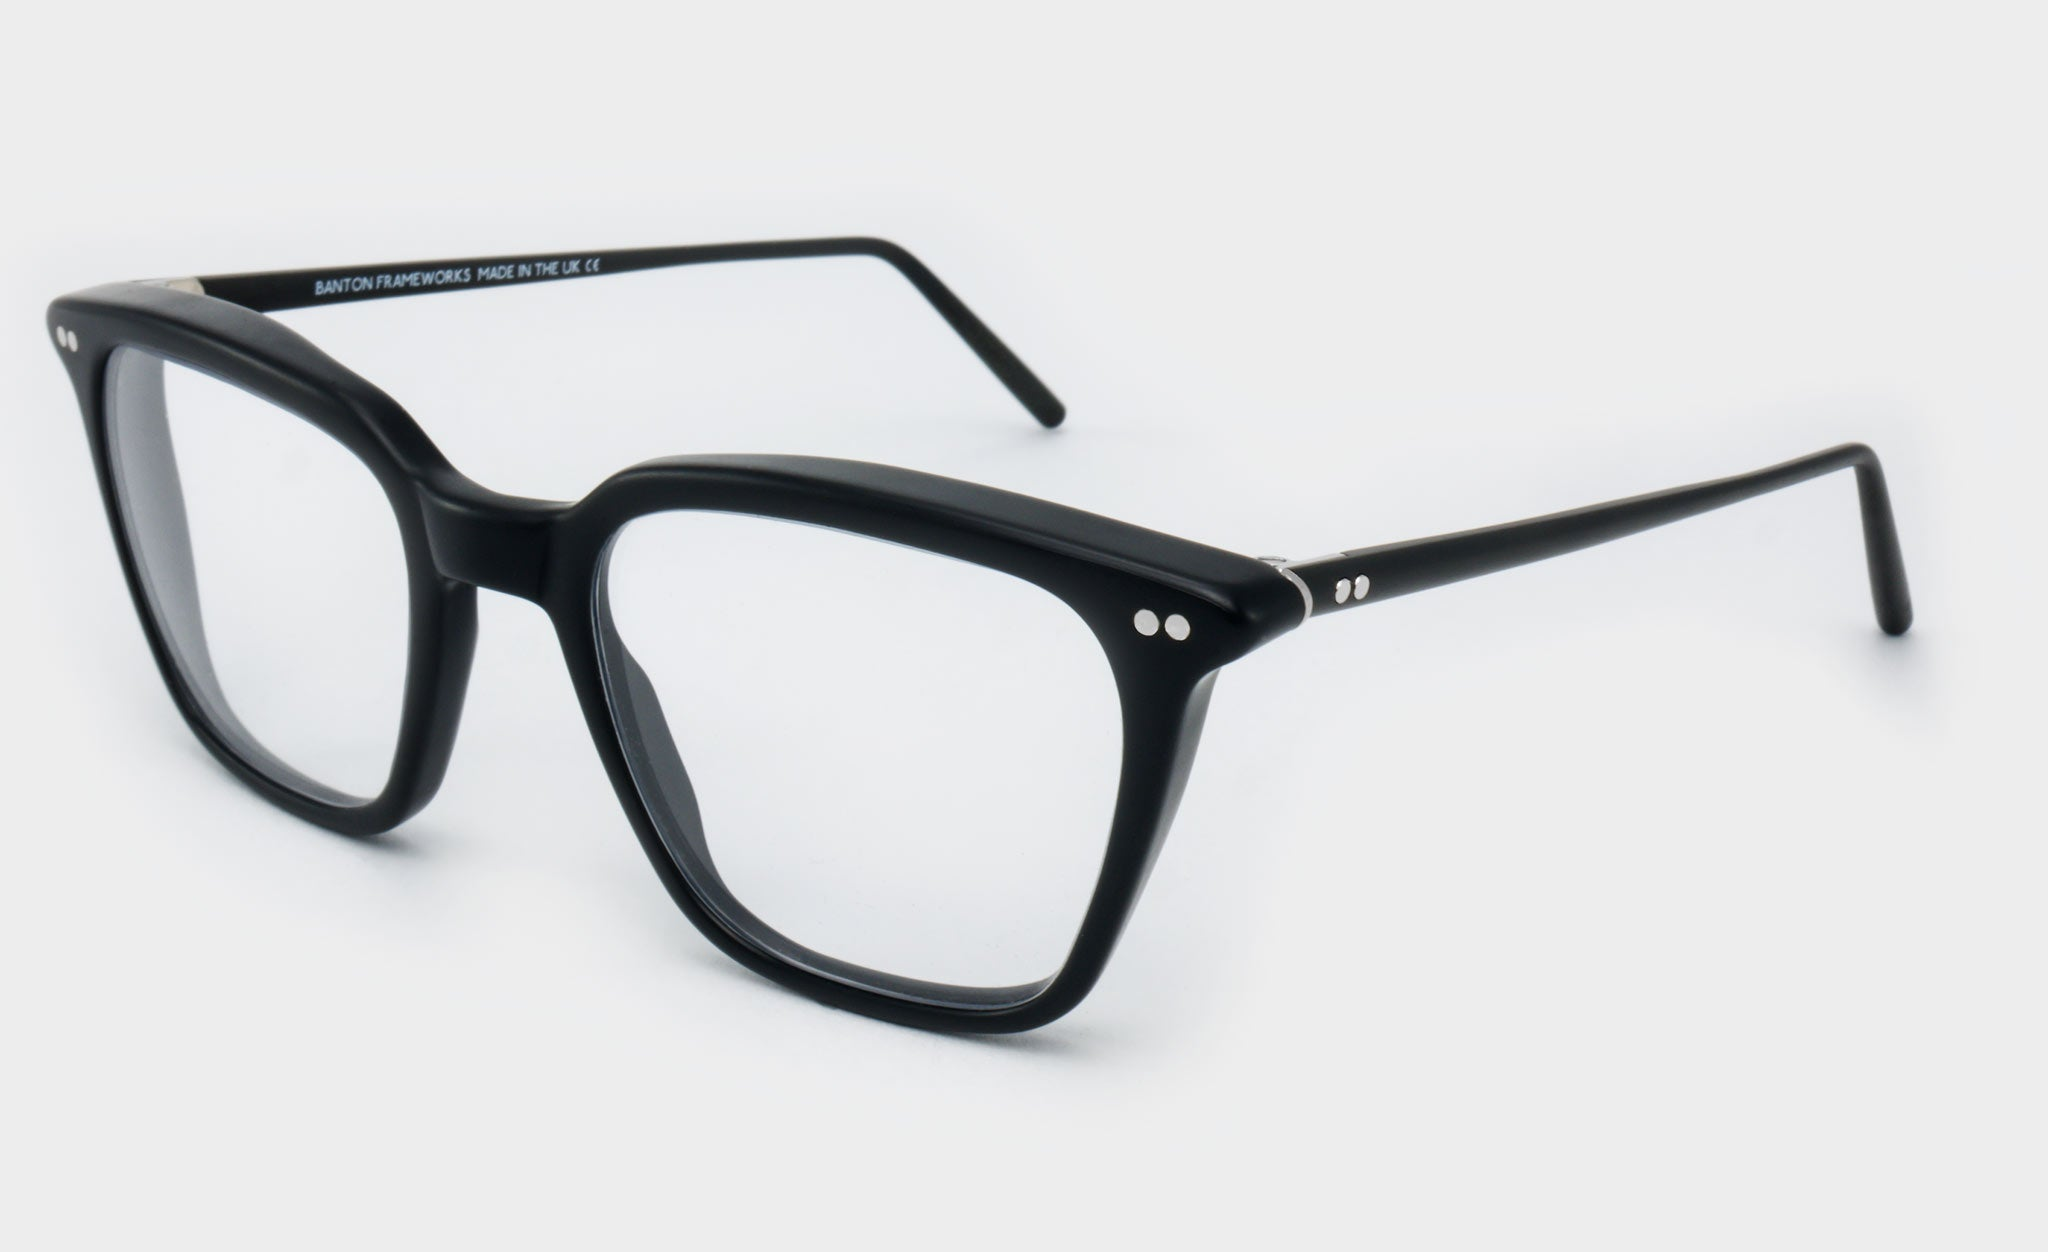 Varifocal-small-square-black-glasses-Side-View